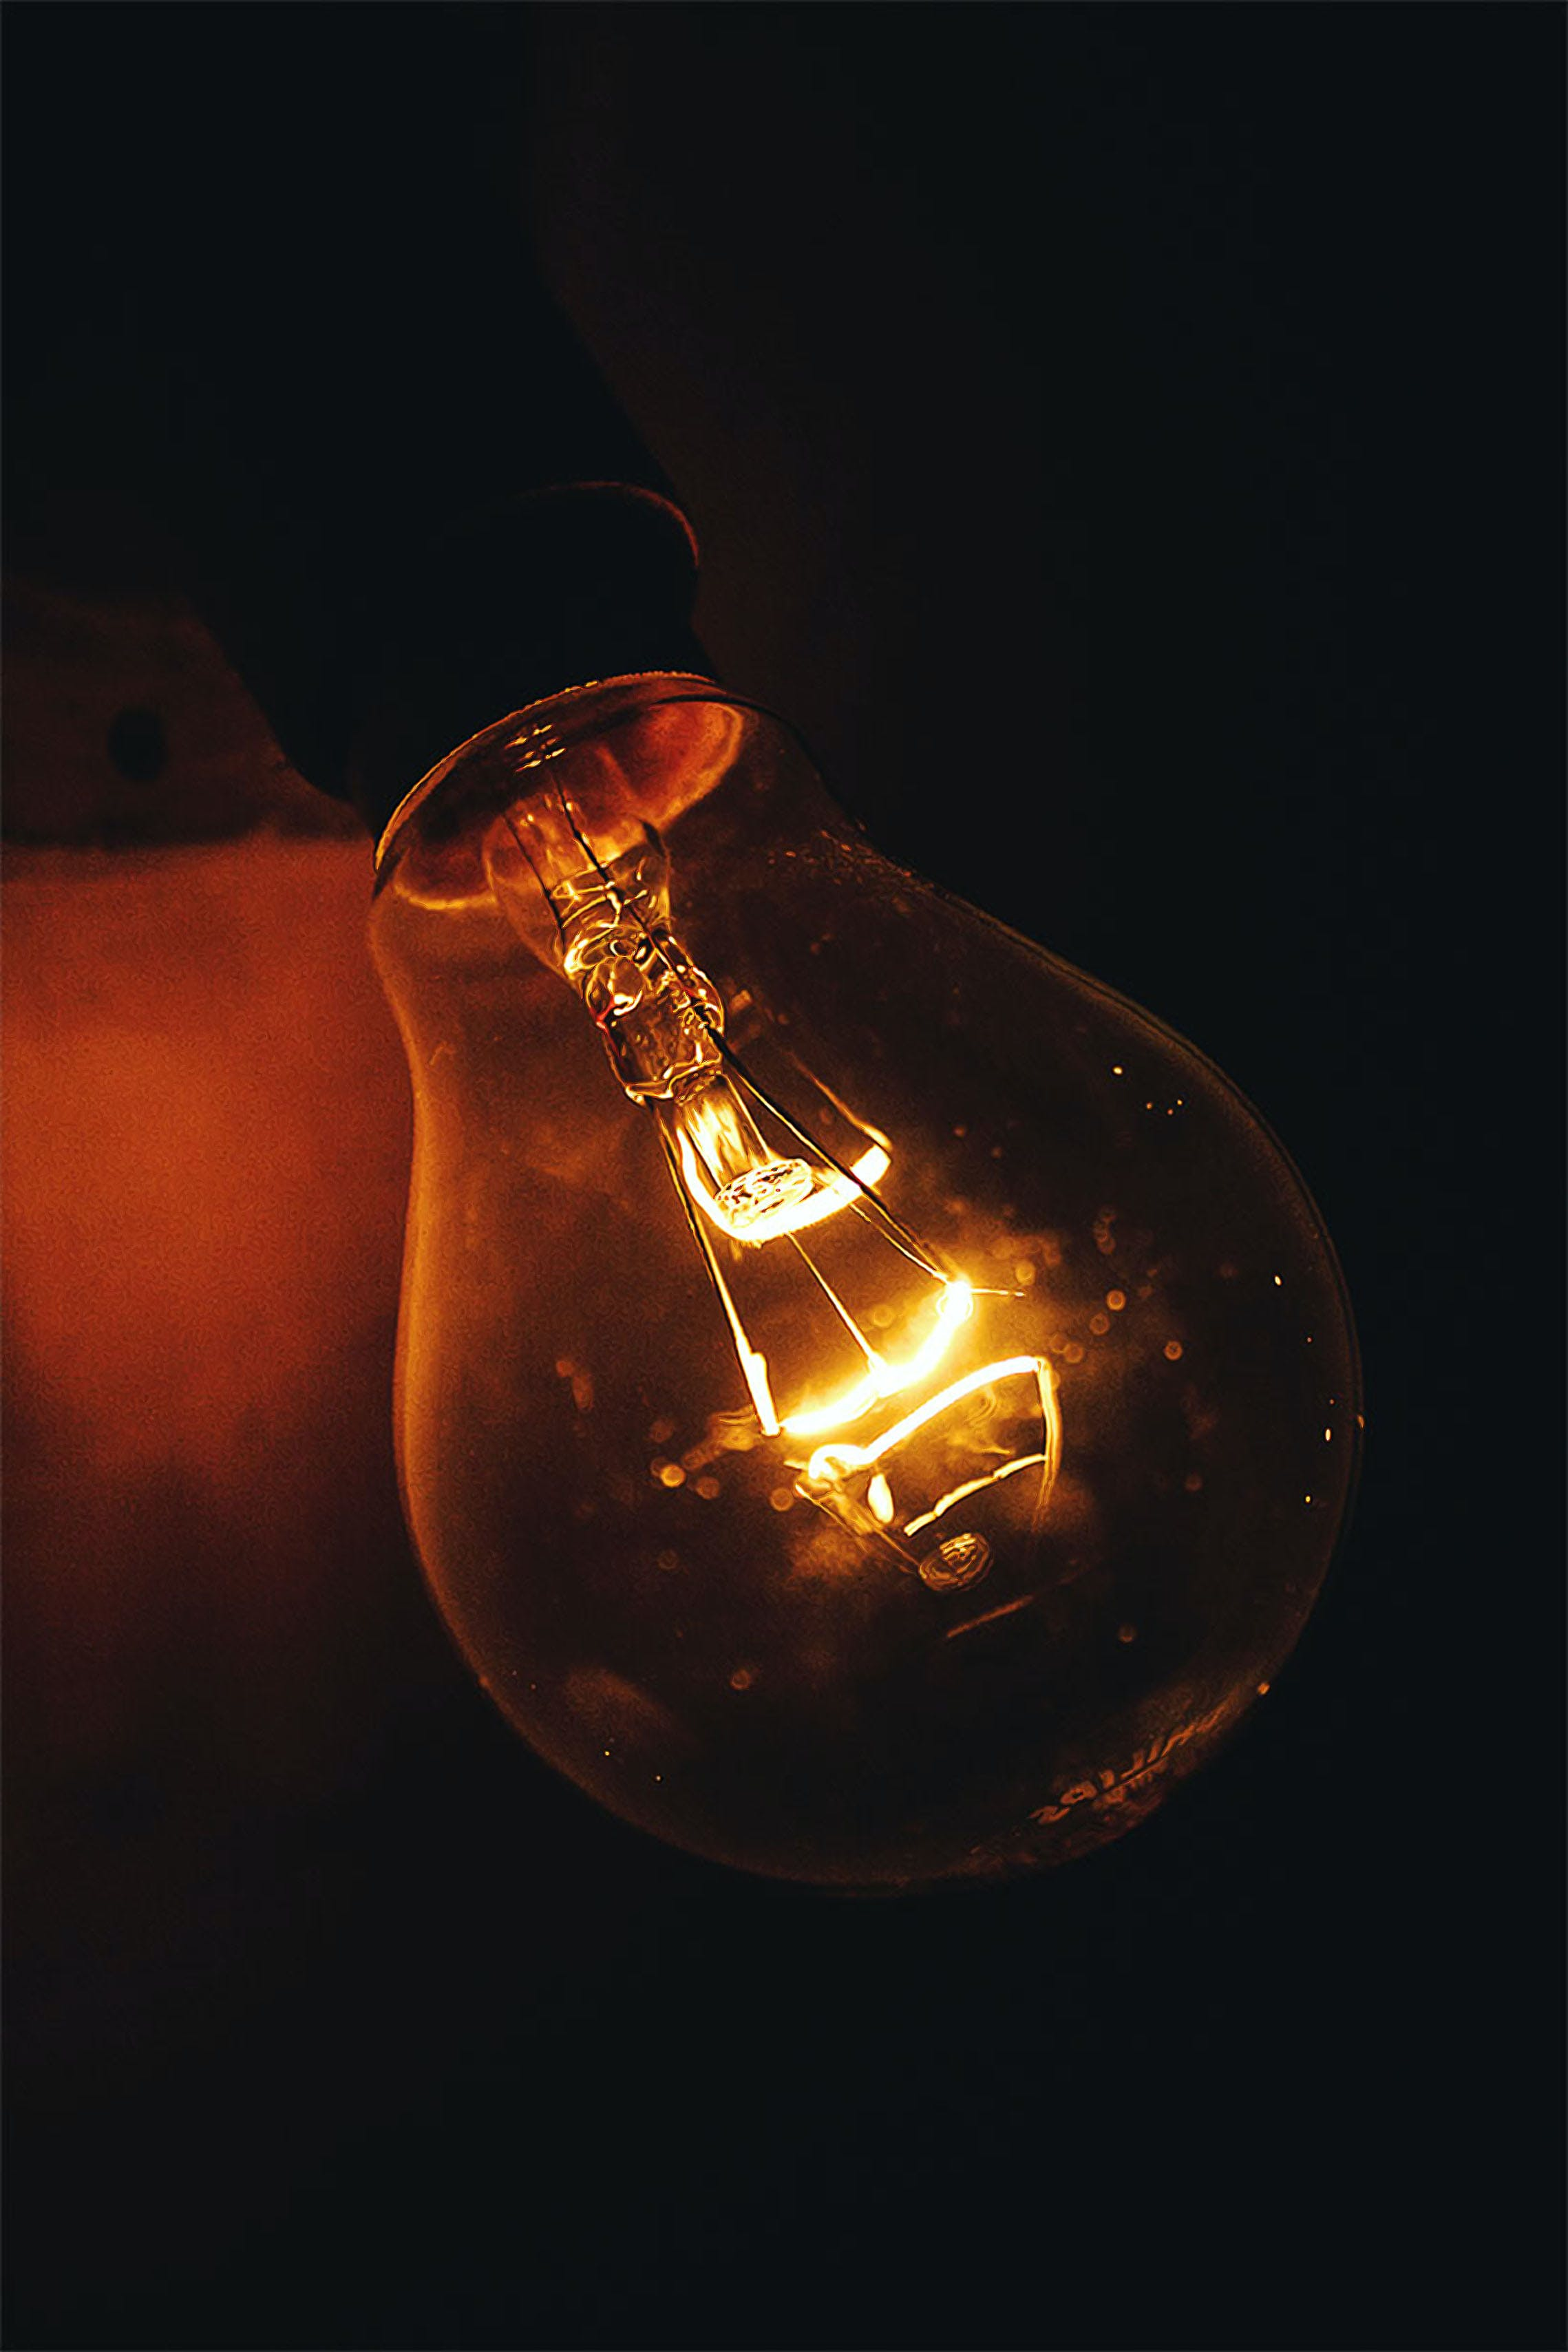 Free stock photo of android wallpaper, ball-shaped, bright, bulb